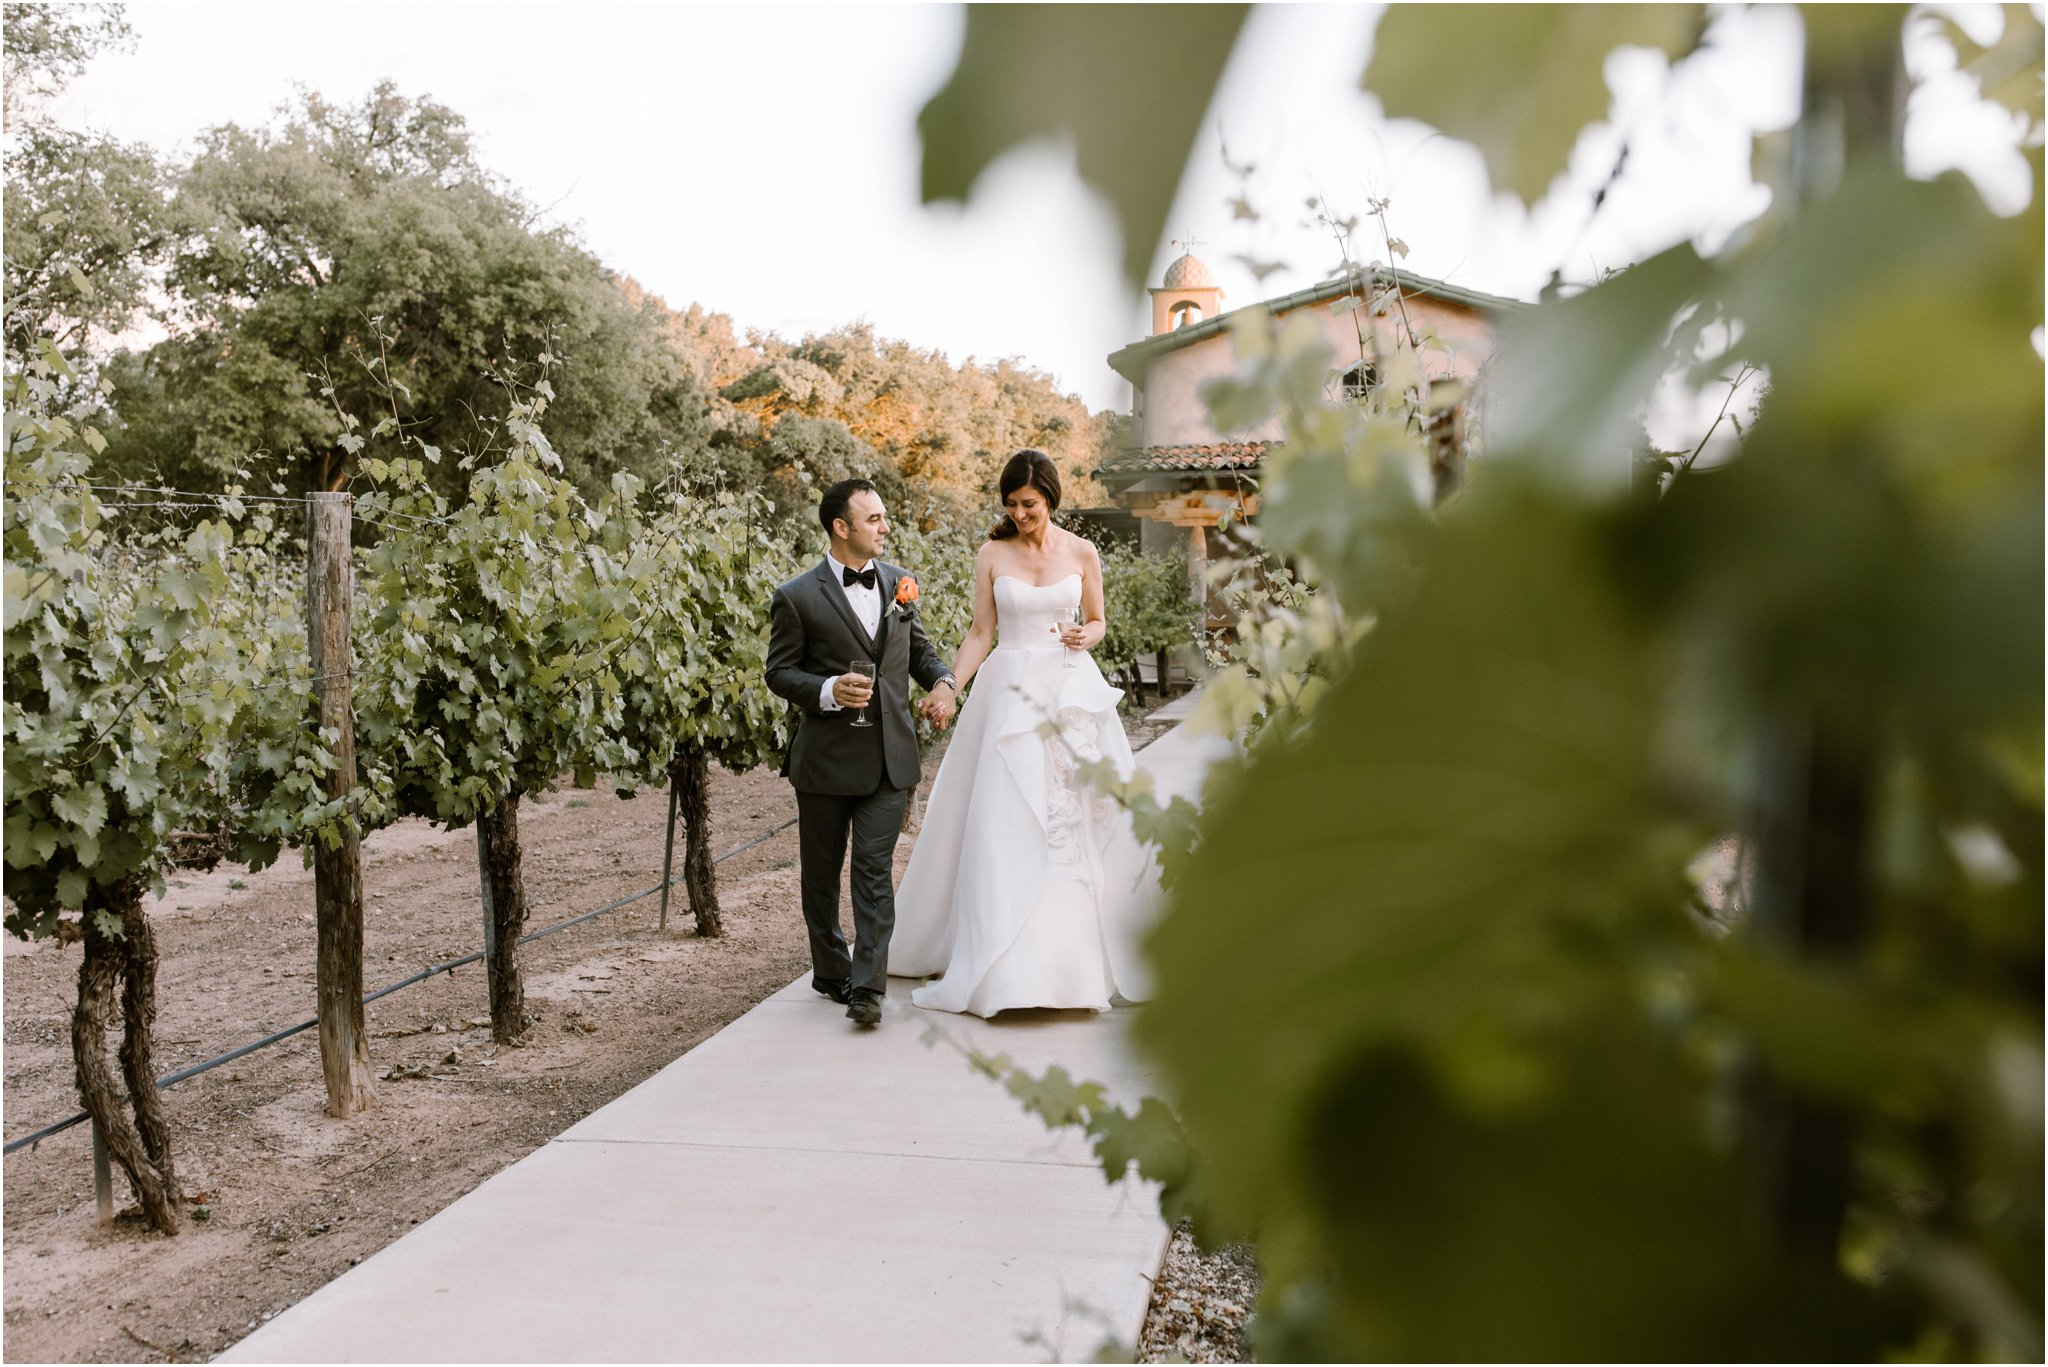 0234Casa Rodena Winery Wedding, Inn and Spa at Loretto wedding, Santa Fe wedding photographers, blue rose photography